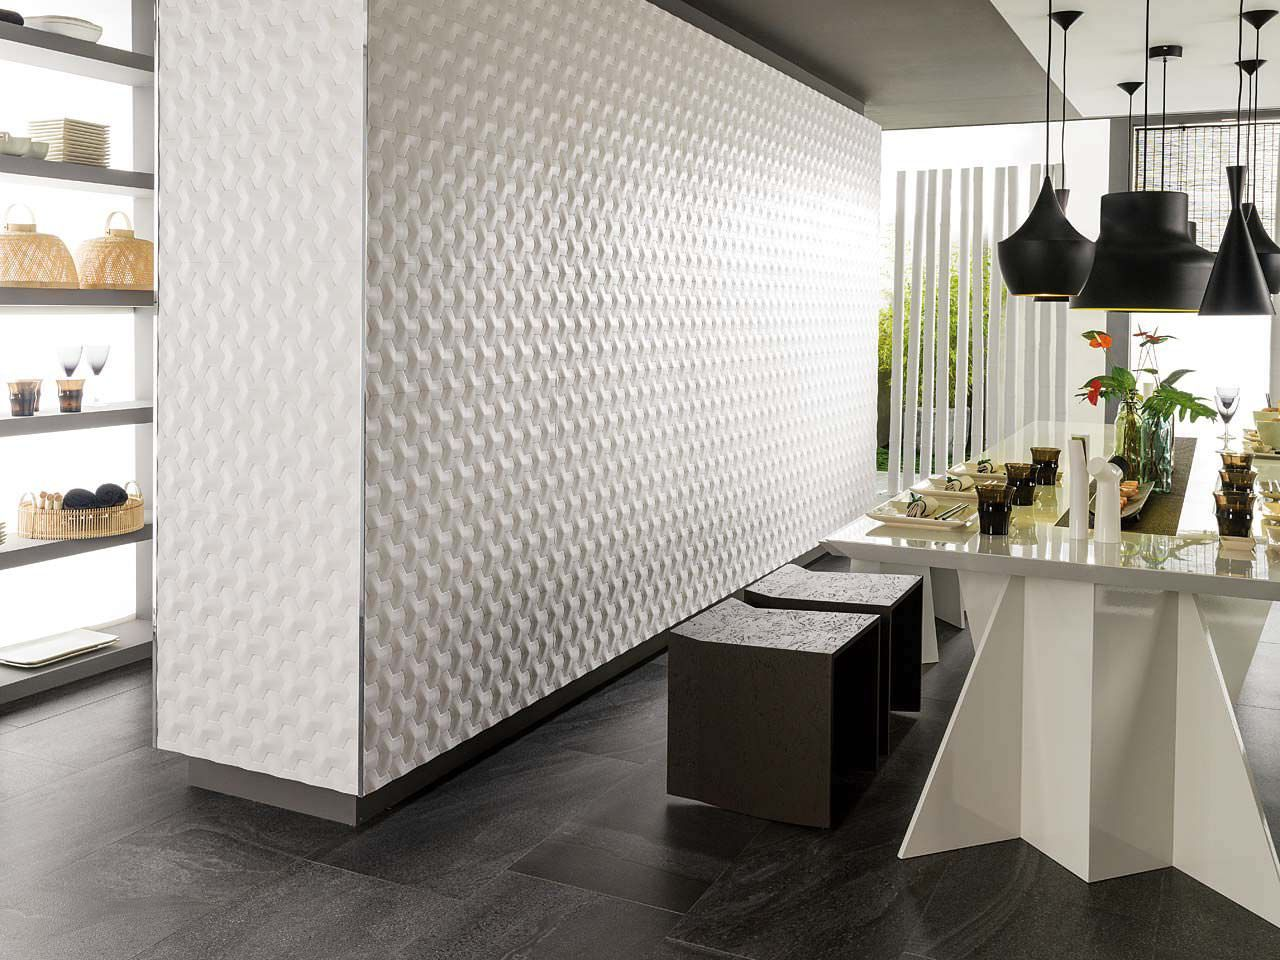 Indoor Tile Wall Mounted Ceramic D Oxo Hannover Blanco